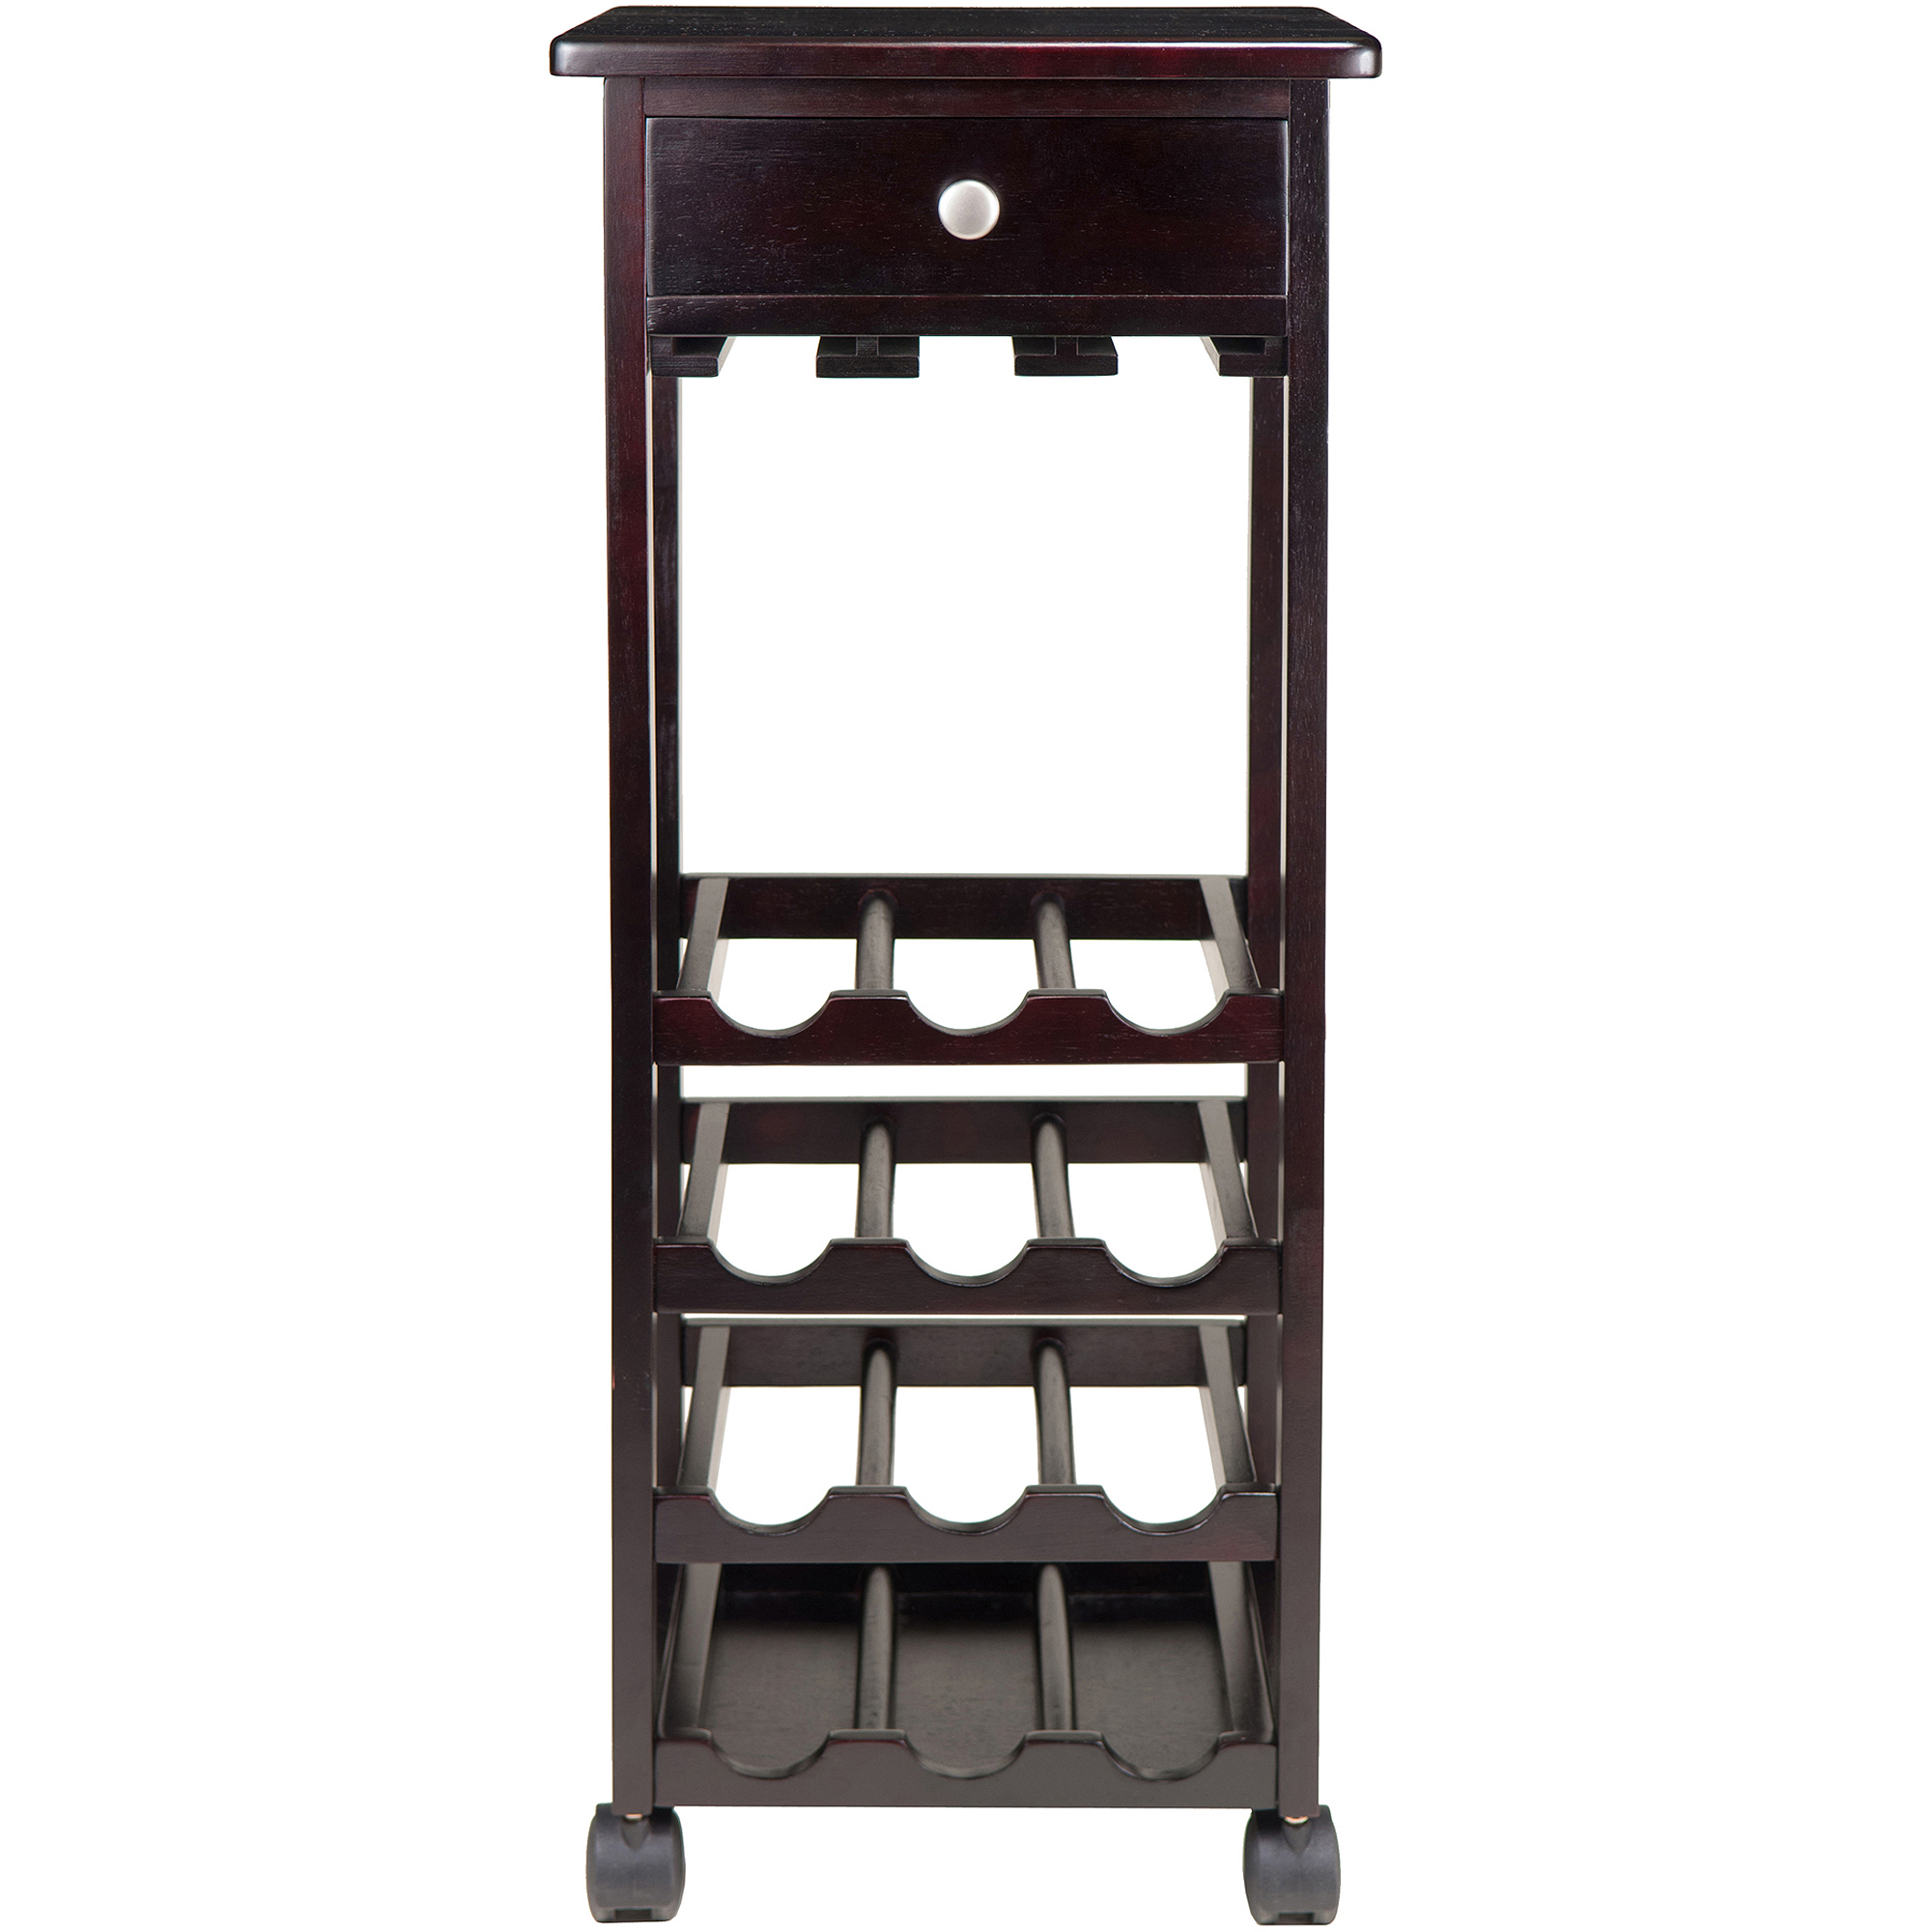 Marsala Rack 12-Bottle Glass Rack Wine Cart with Casters, Espresso